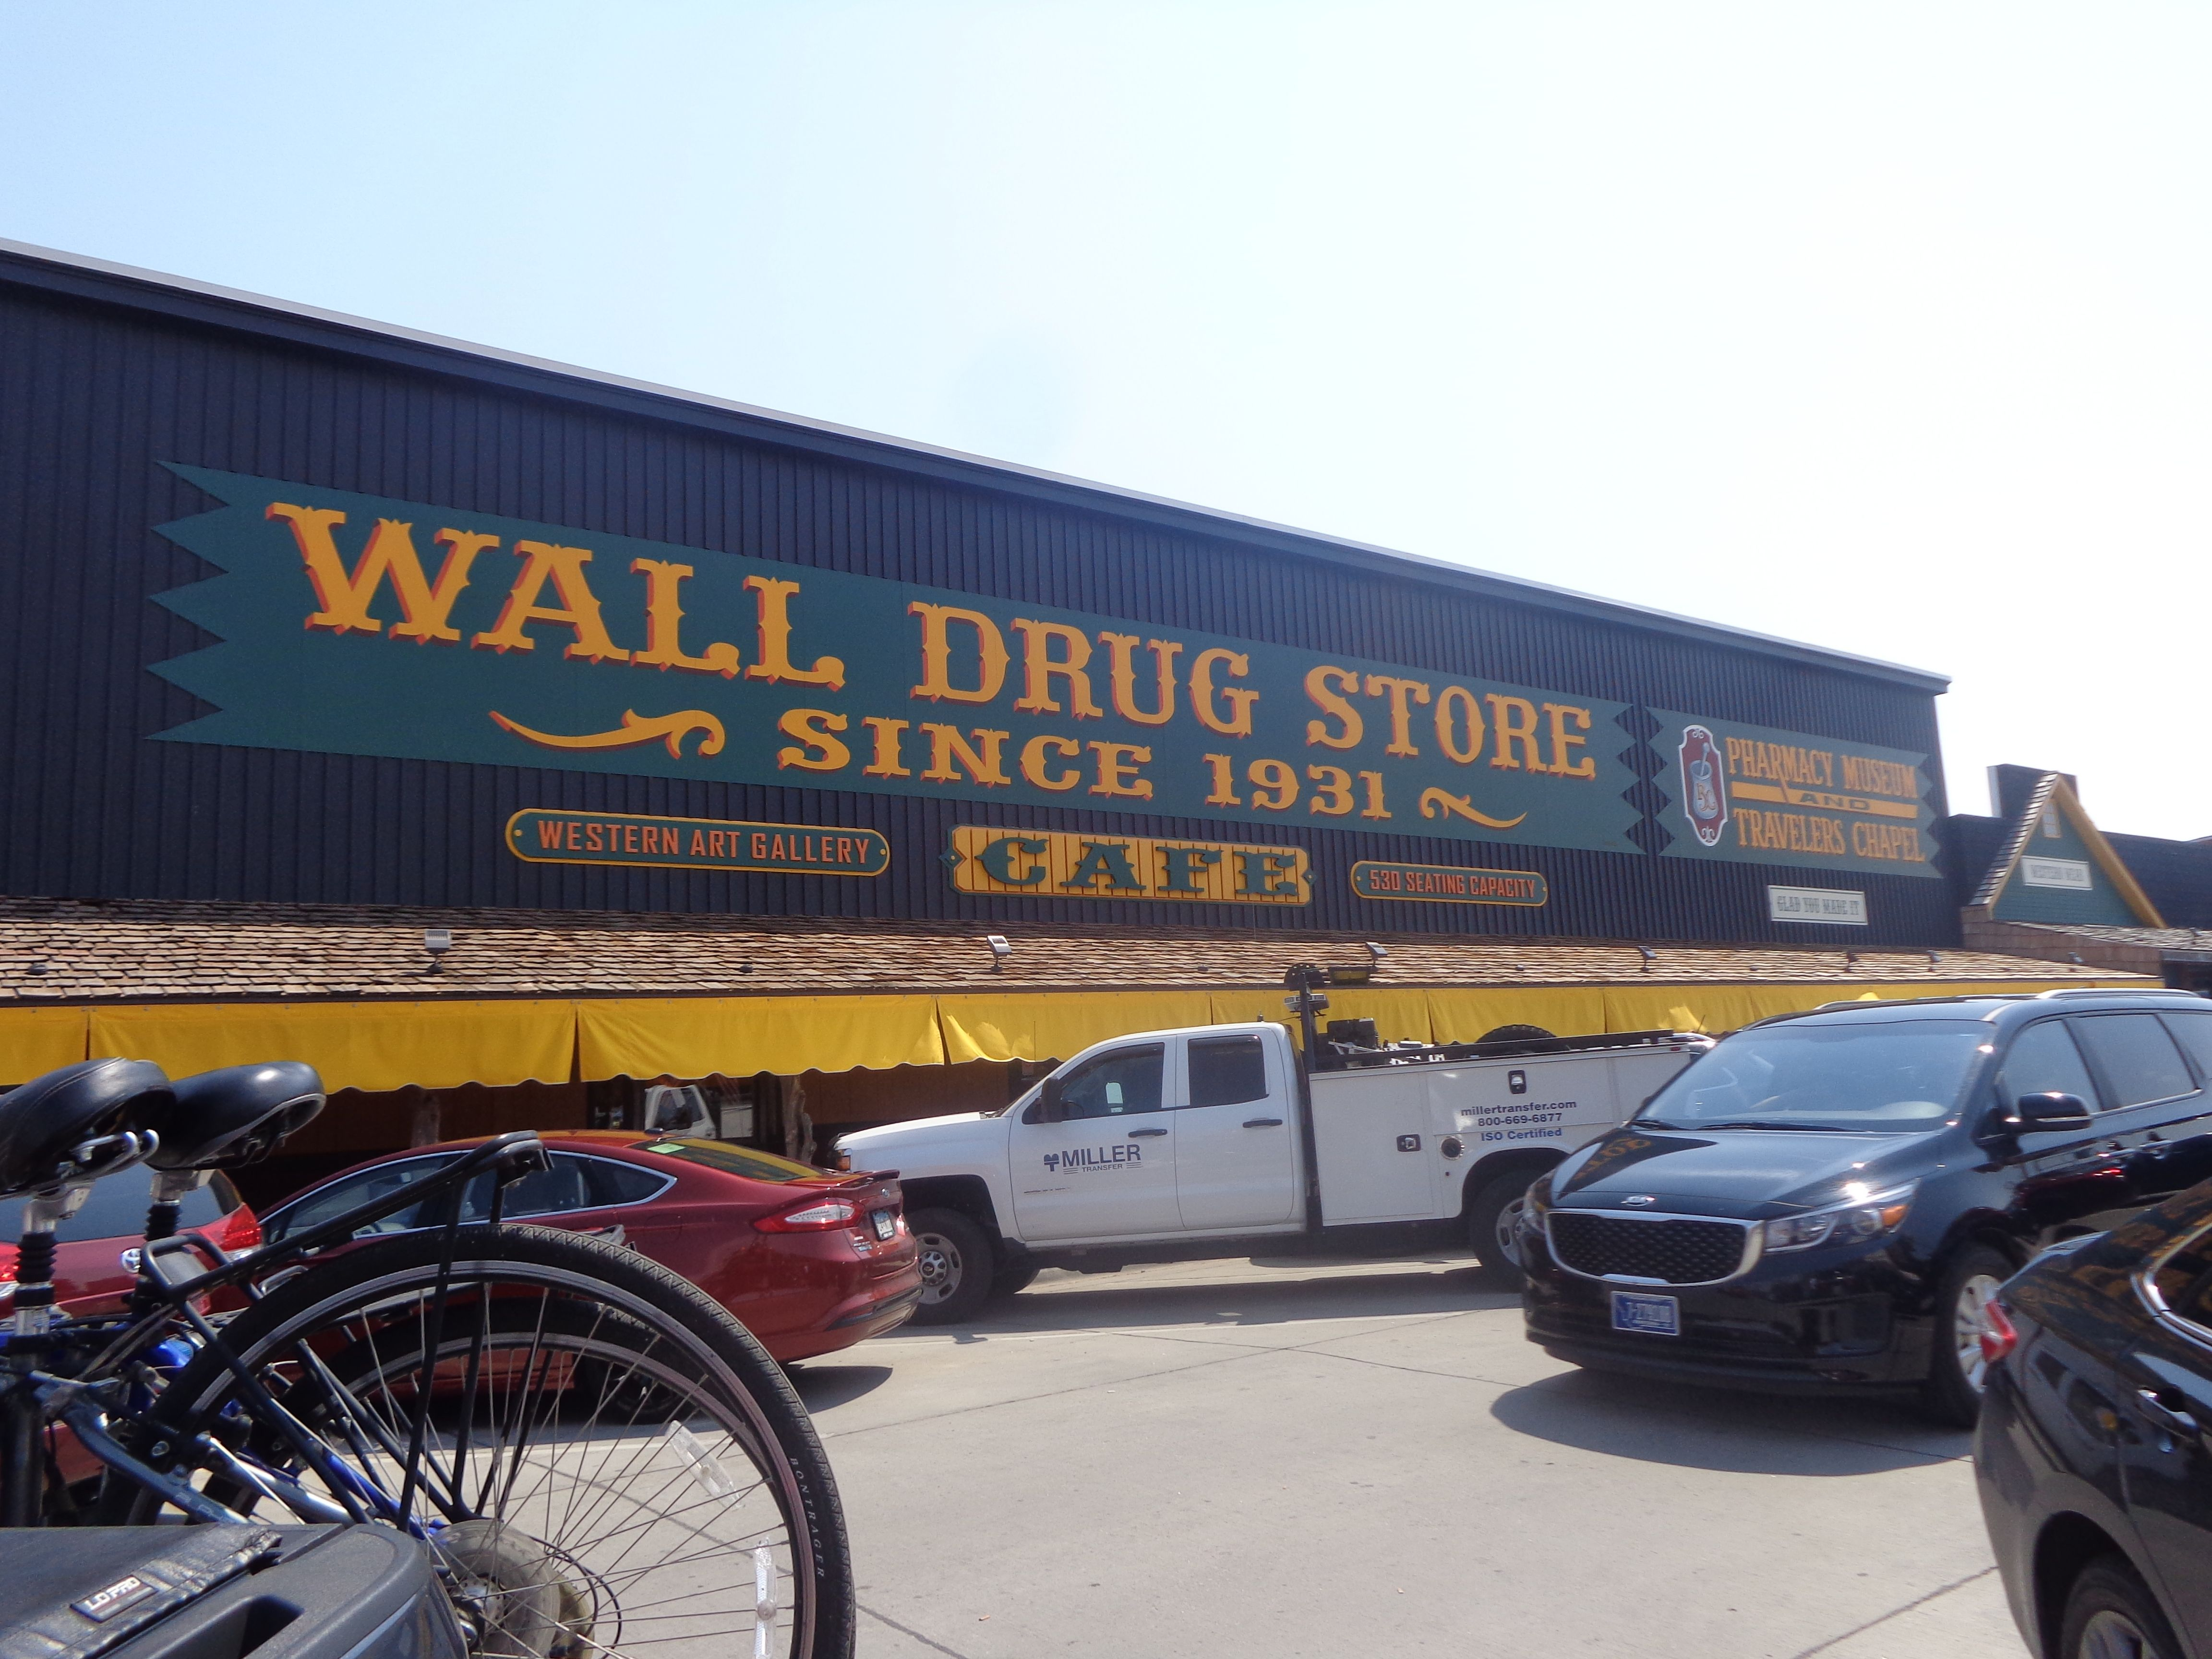 famous walls drug south dakota wall drug store south on wall drug south dakota id=98601